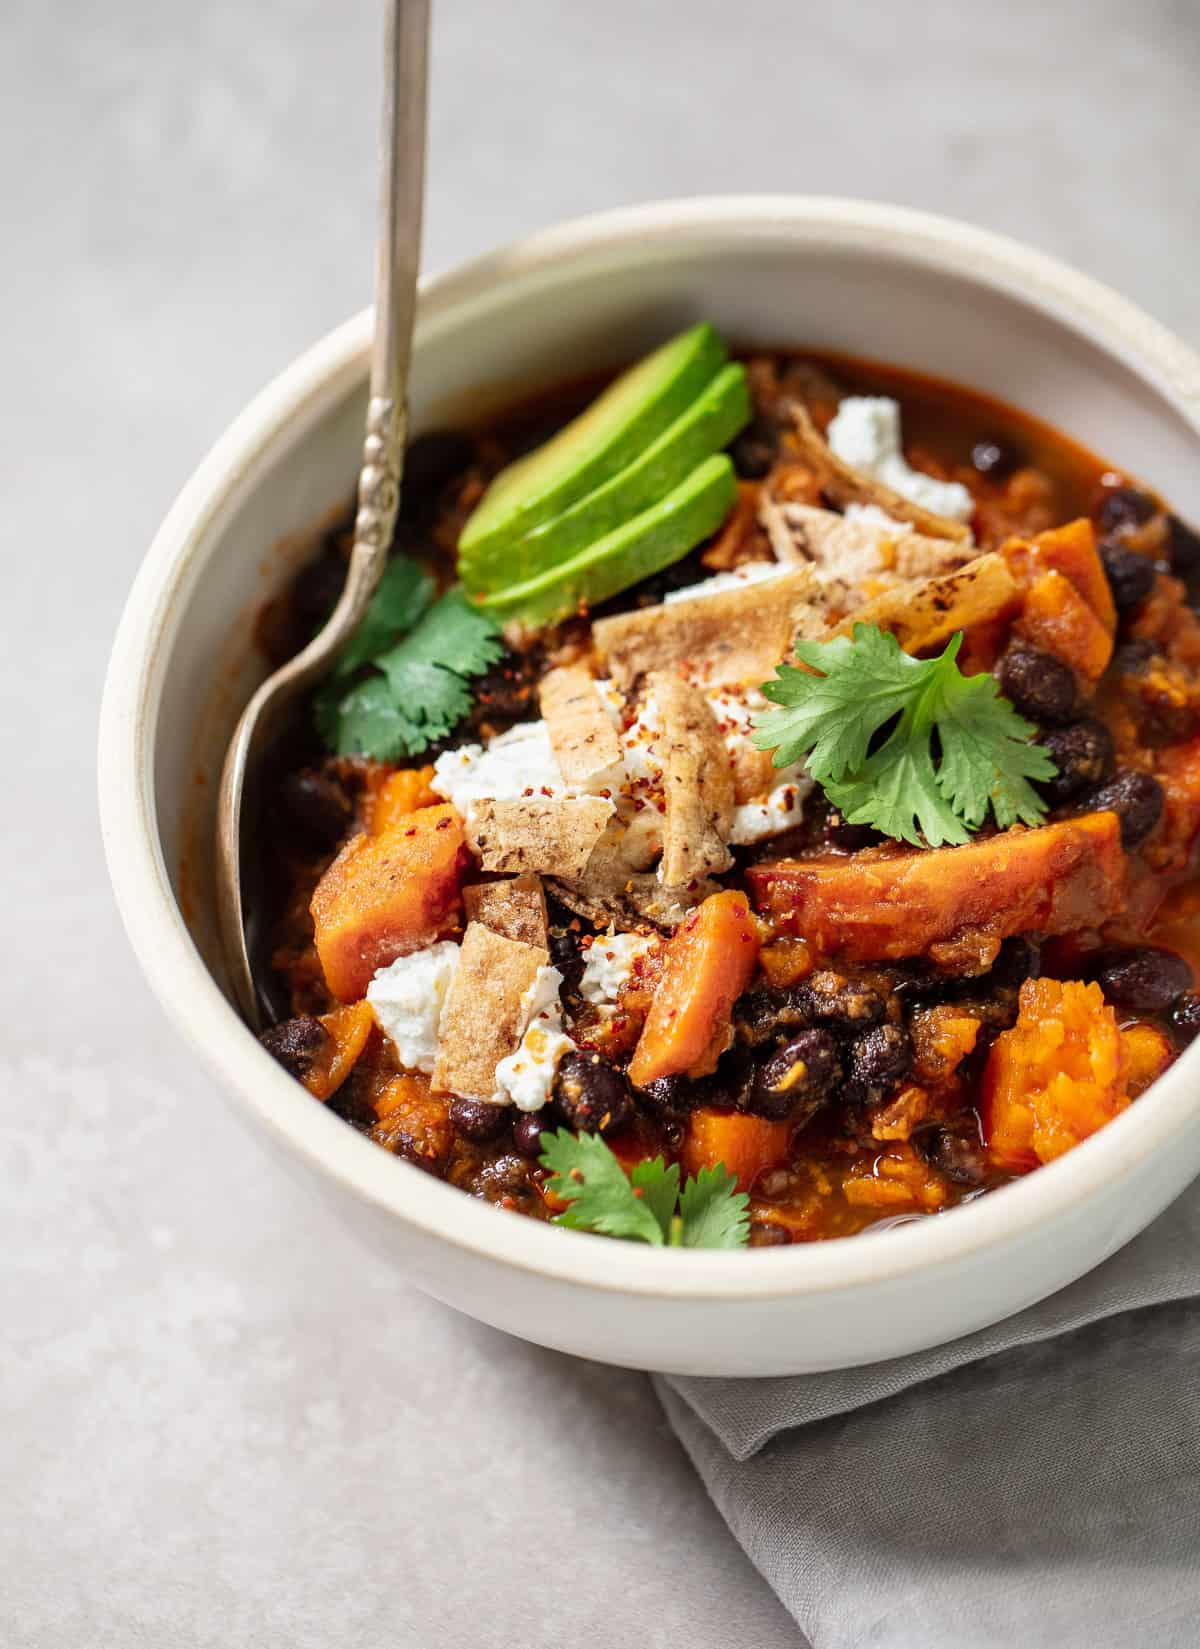 30-Minute Sweet Potato Black Bean Chili with Goat Cheese and Avocado {Vegetarian/Vegan}